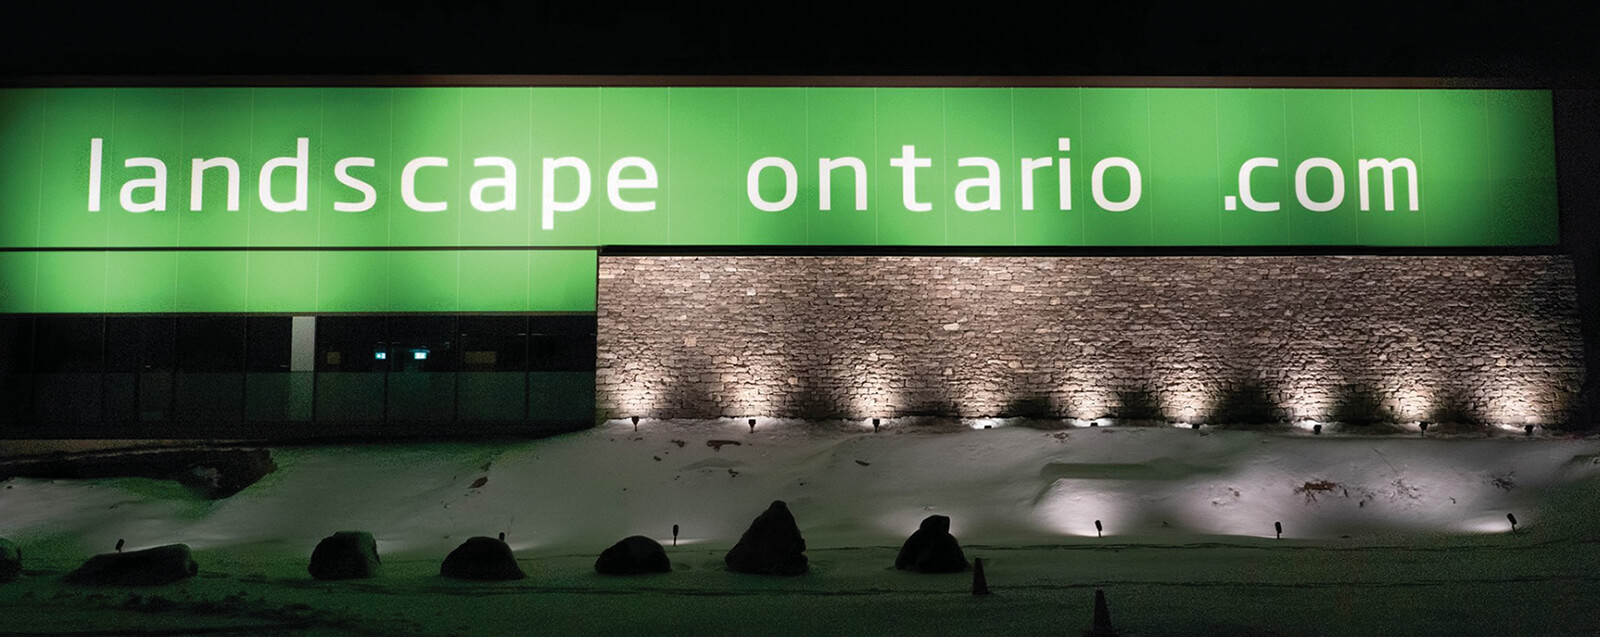 landscape ontario building and sign at night